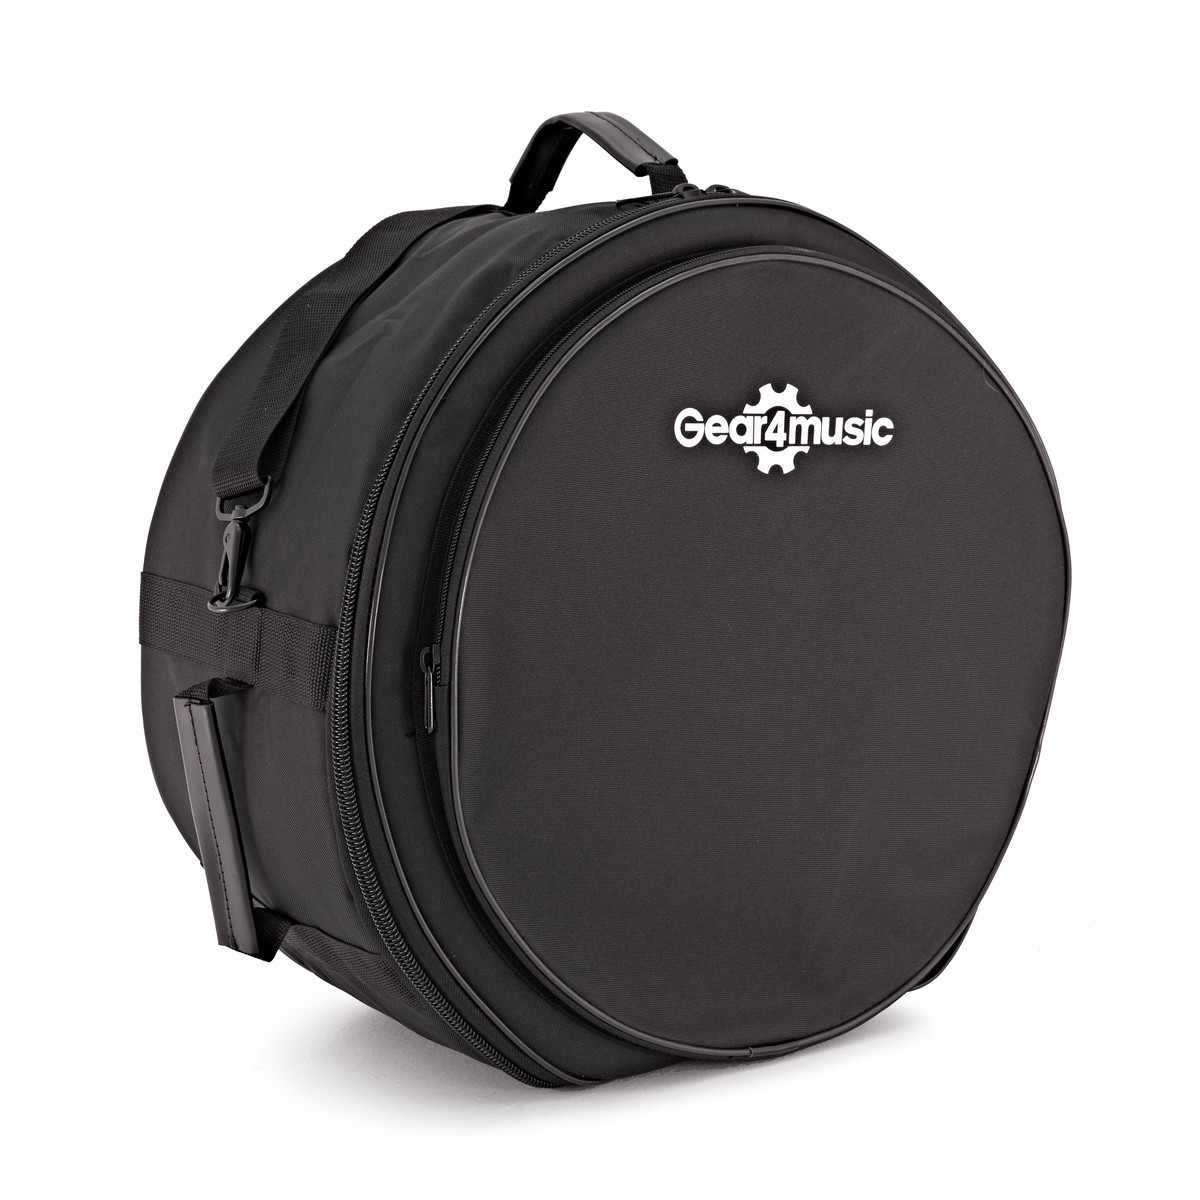 "14"" Padded Snare Drum Bag by Gear4music"